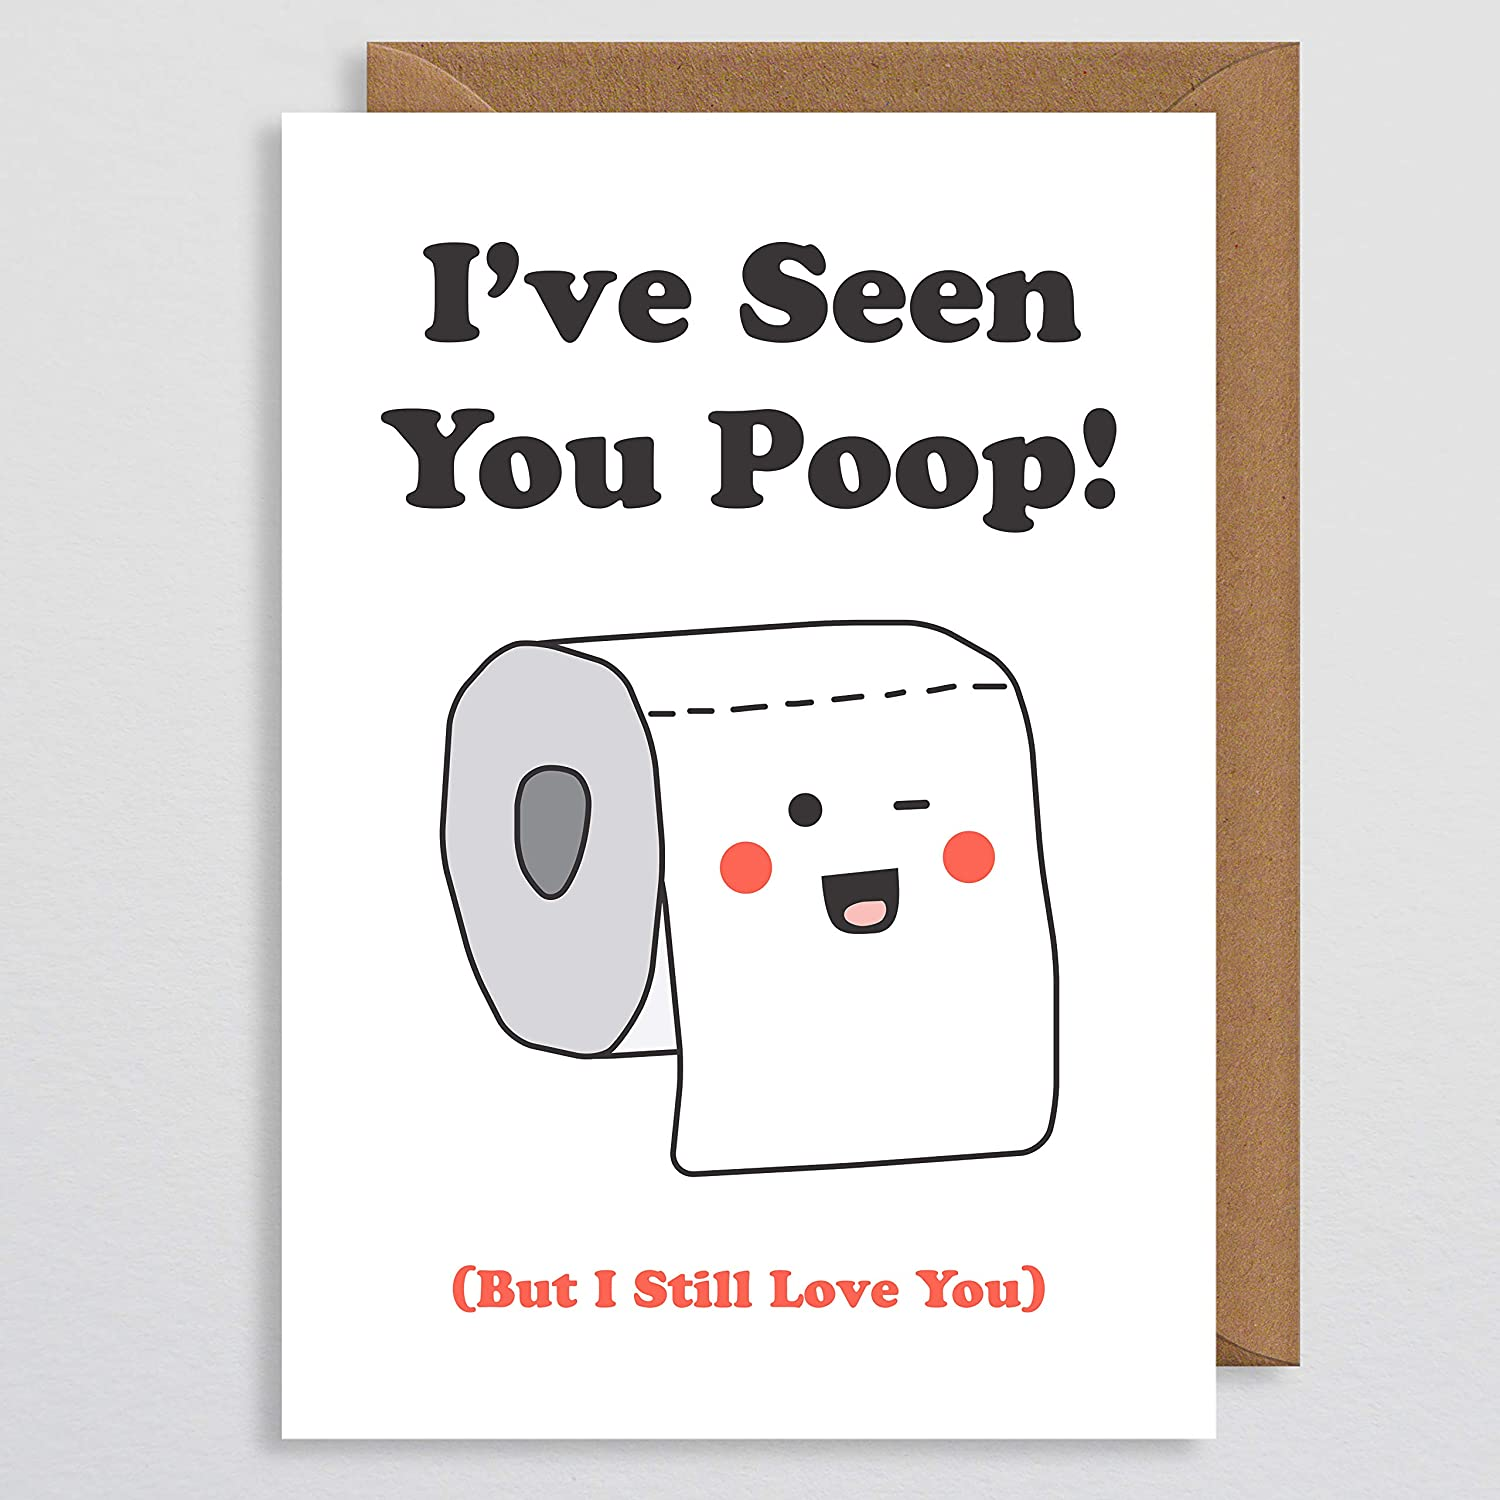 Rude Anniversary Card I Love You Couple Cheeky Wife Funny Valentines Card Naughty Valentines Card LOL Girlfriend Partner for Her Valentines Card Funny Rude Bum Naked Card